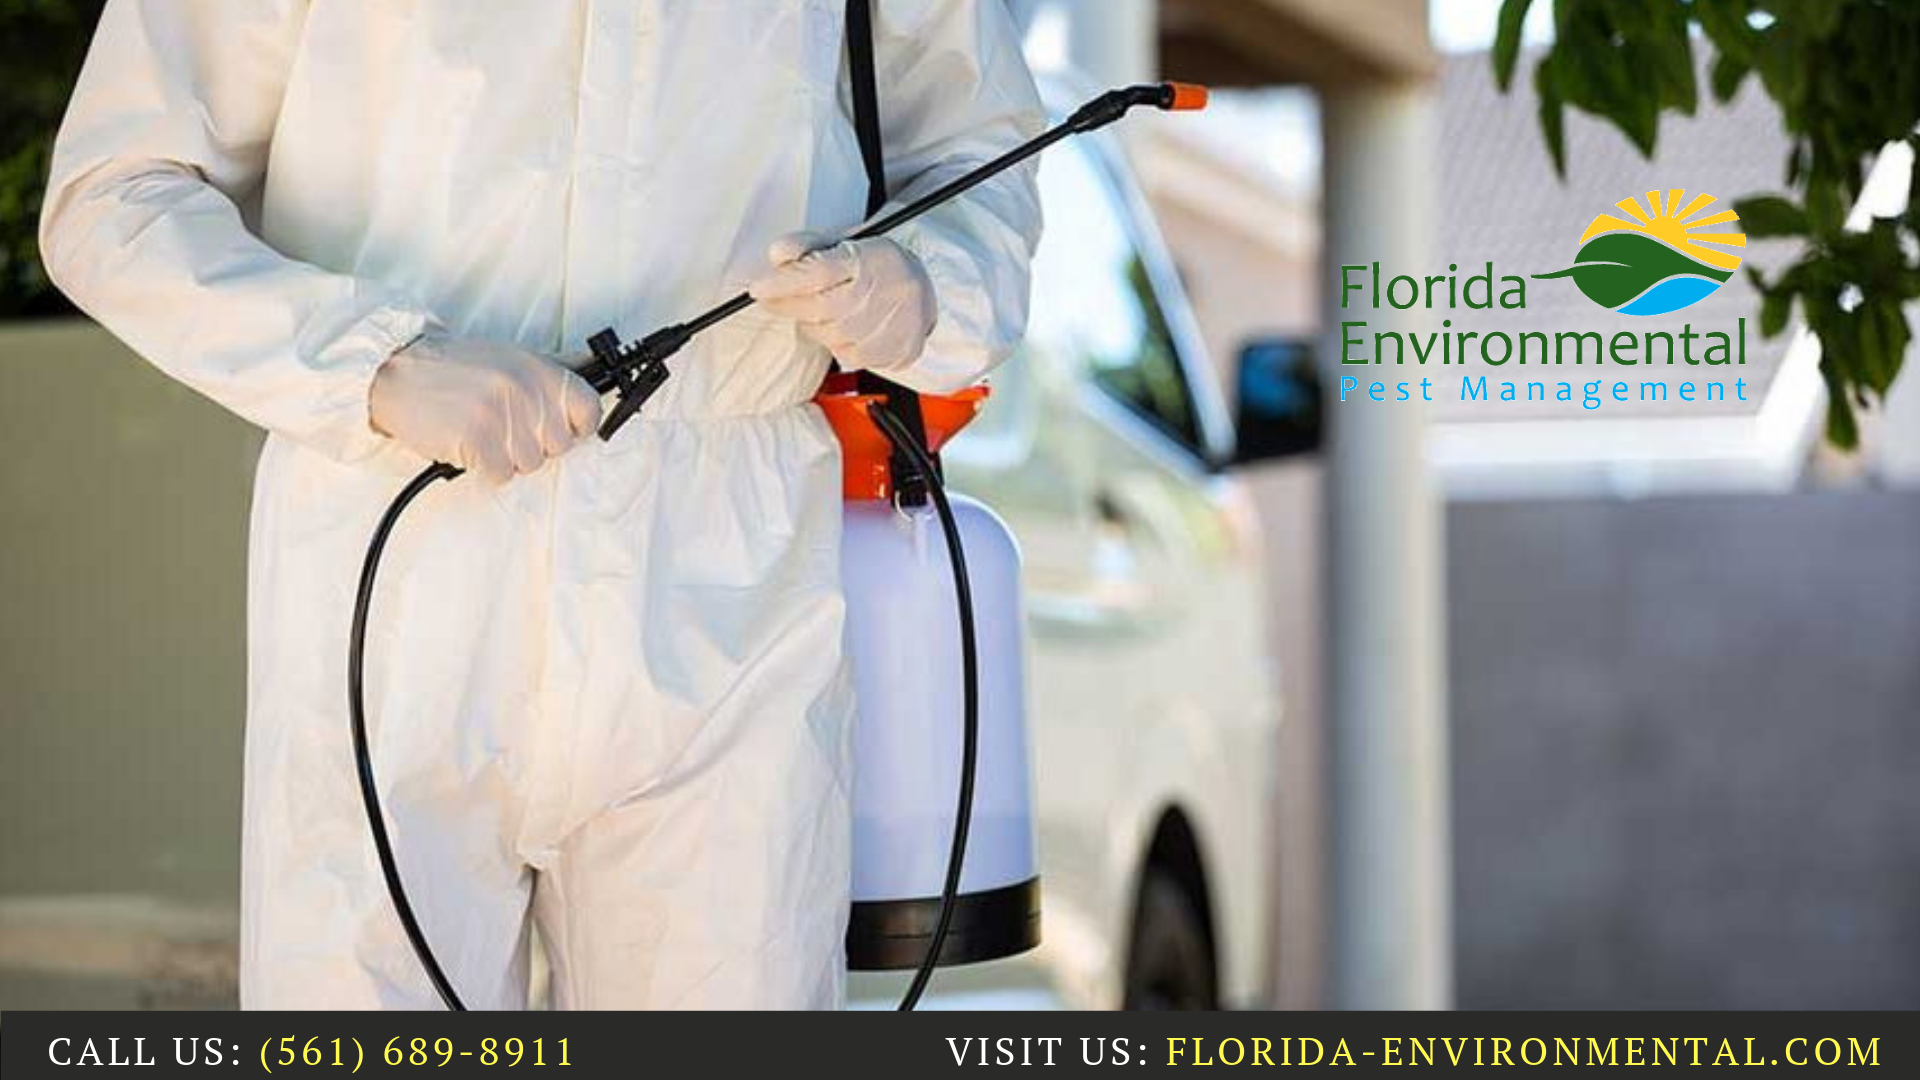 Welcome To Florida Environmental Pest Management We Provide The Quality Pest Control By Driving Pests Out O Termite Control Pest Control Pest Control Services